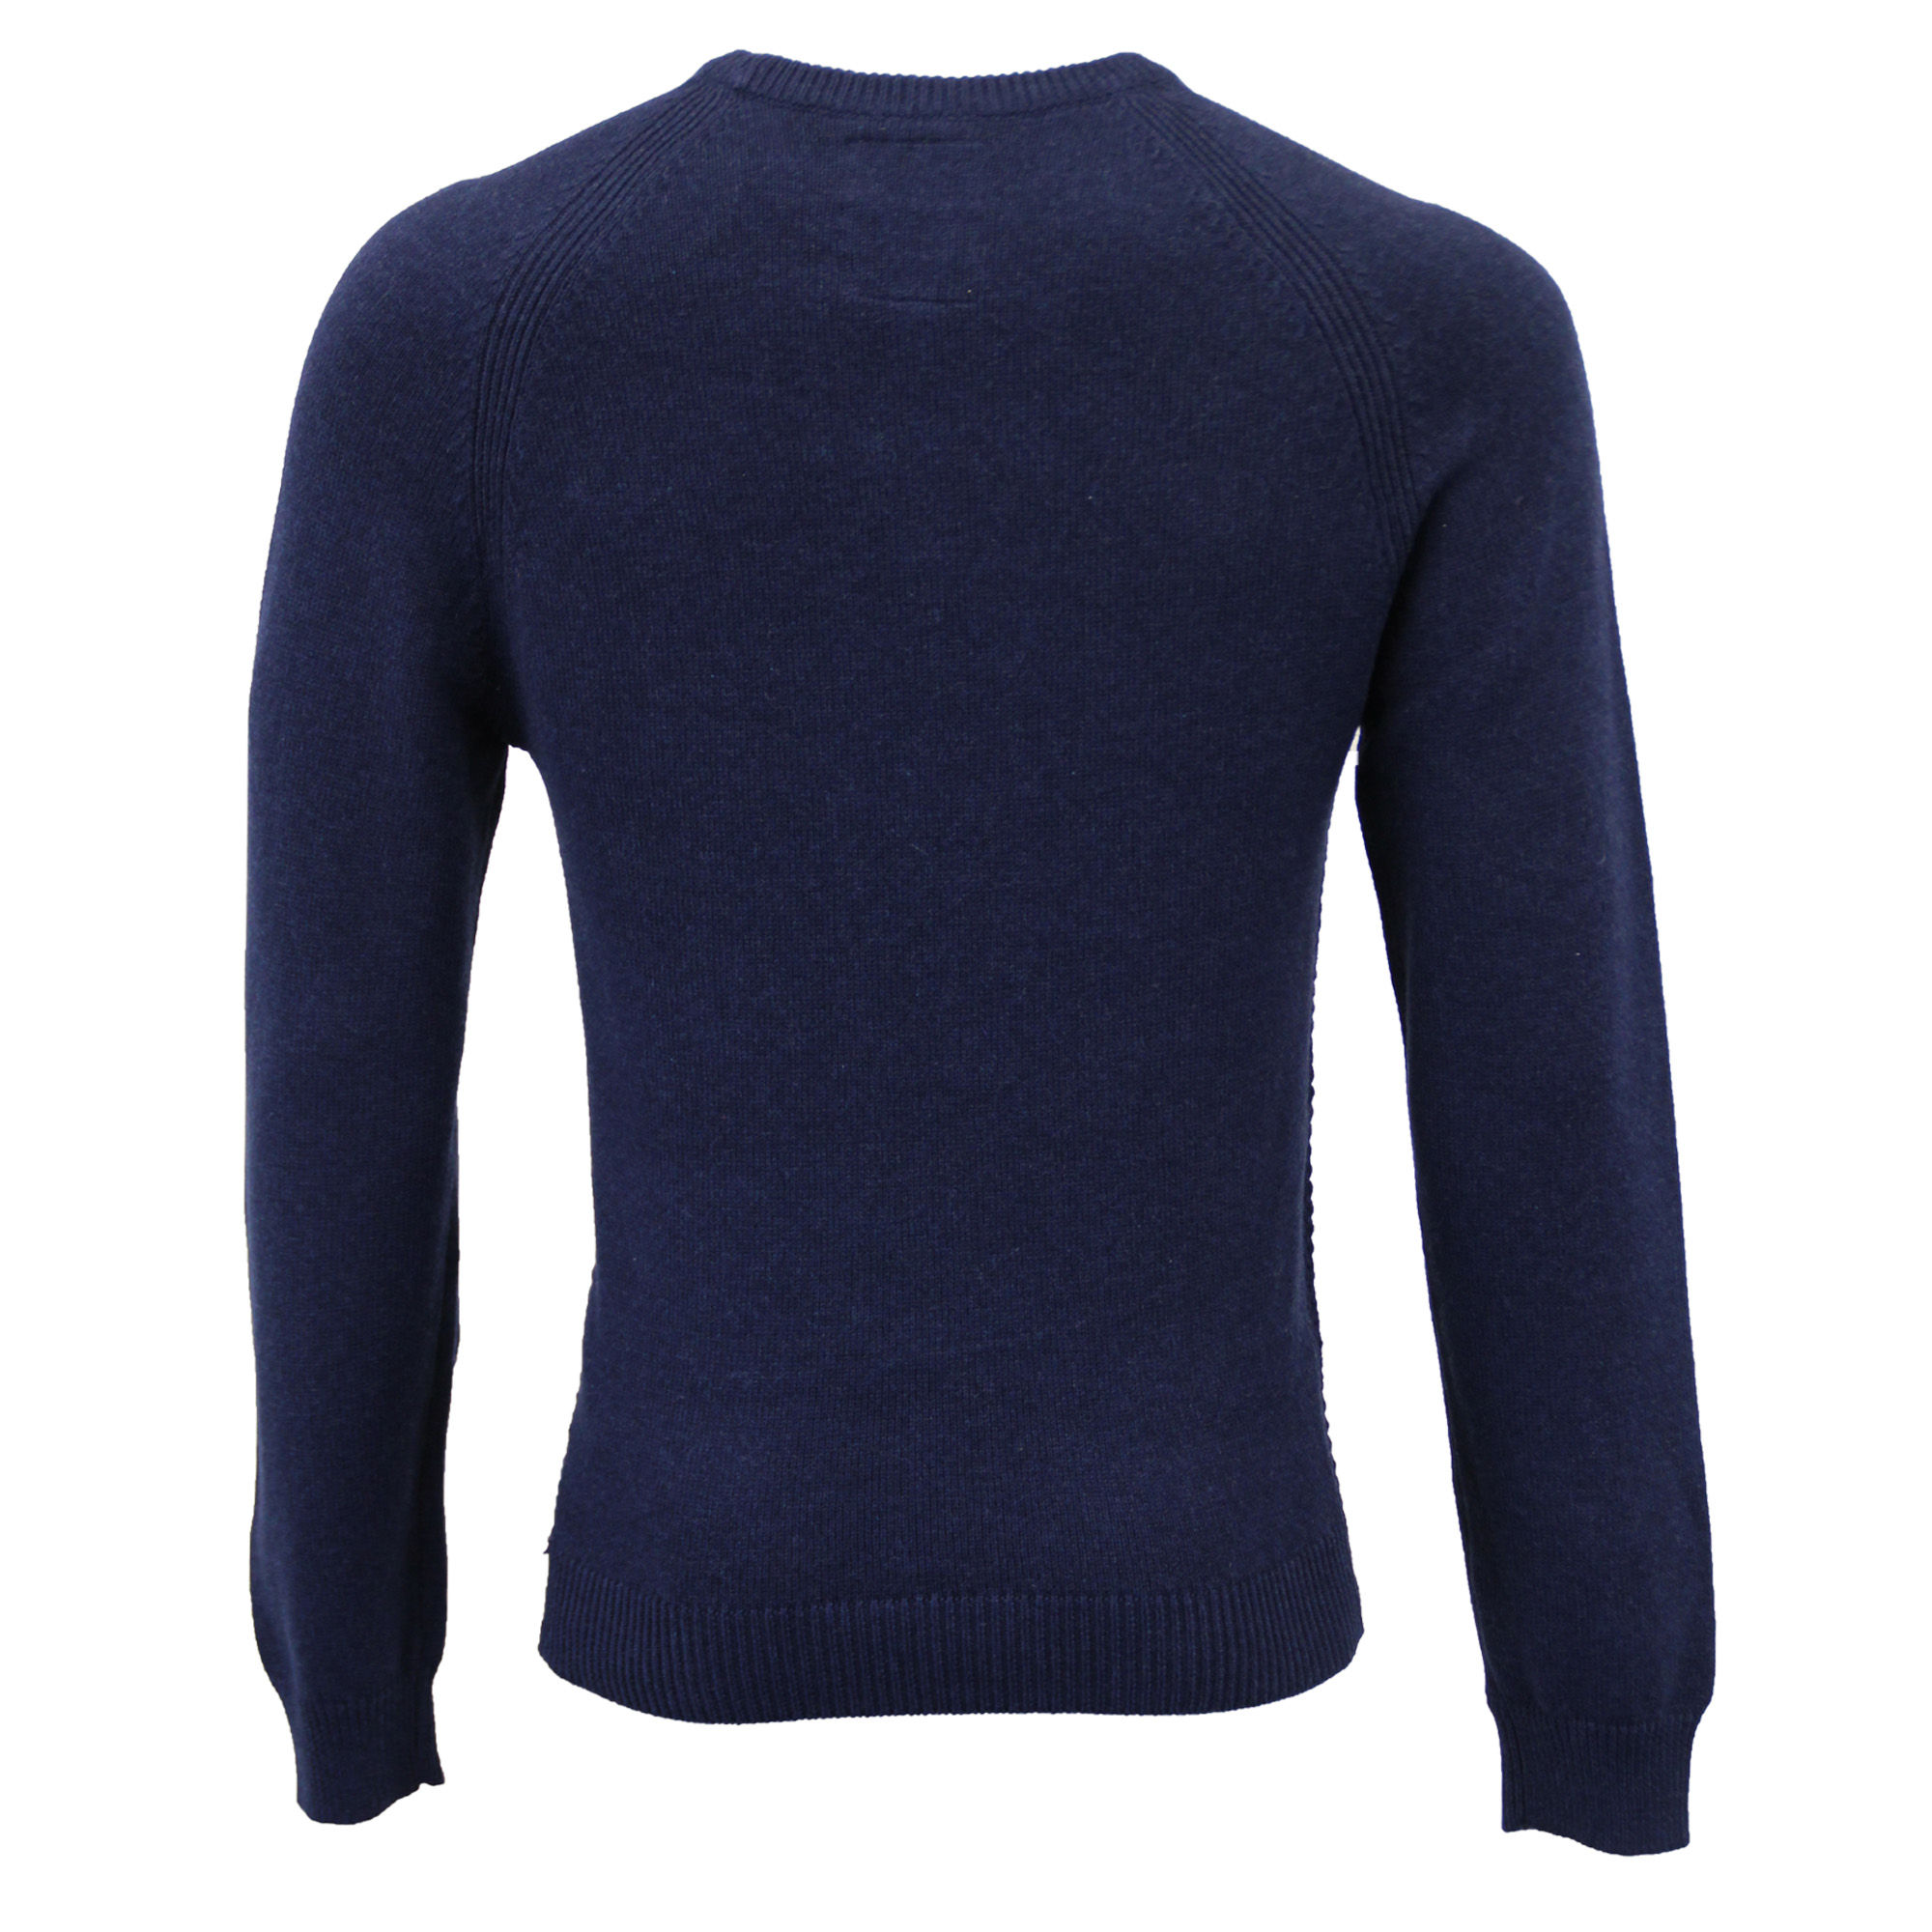 Mens-Jumper-Threadbare-Knitted-Cotton-Sweater-Half-Zip-Pullover-Top-Winter-New thumbnail 22